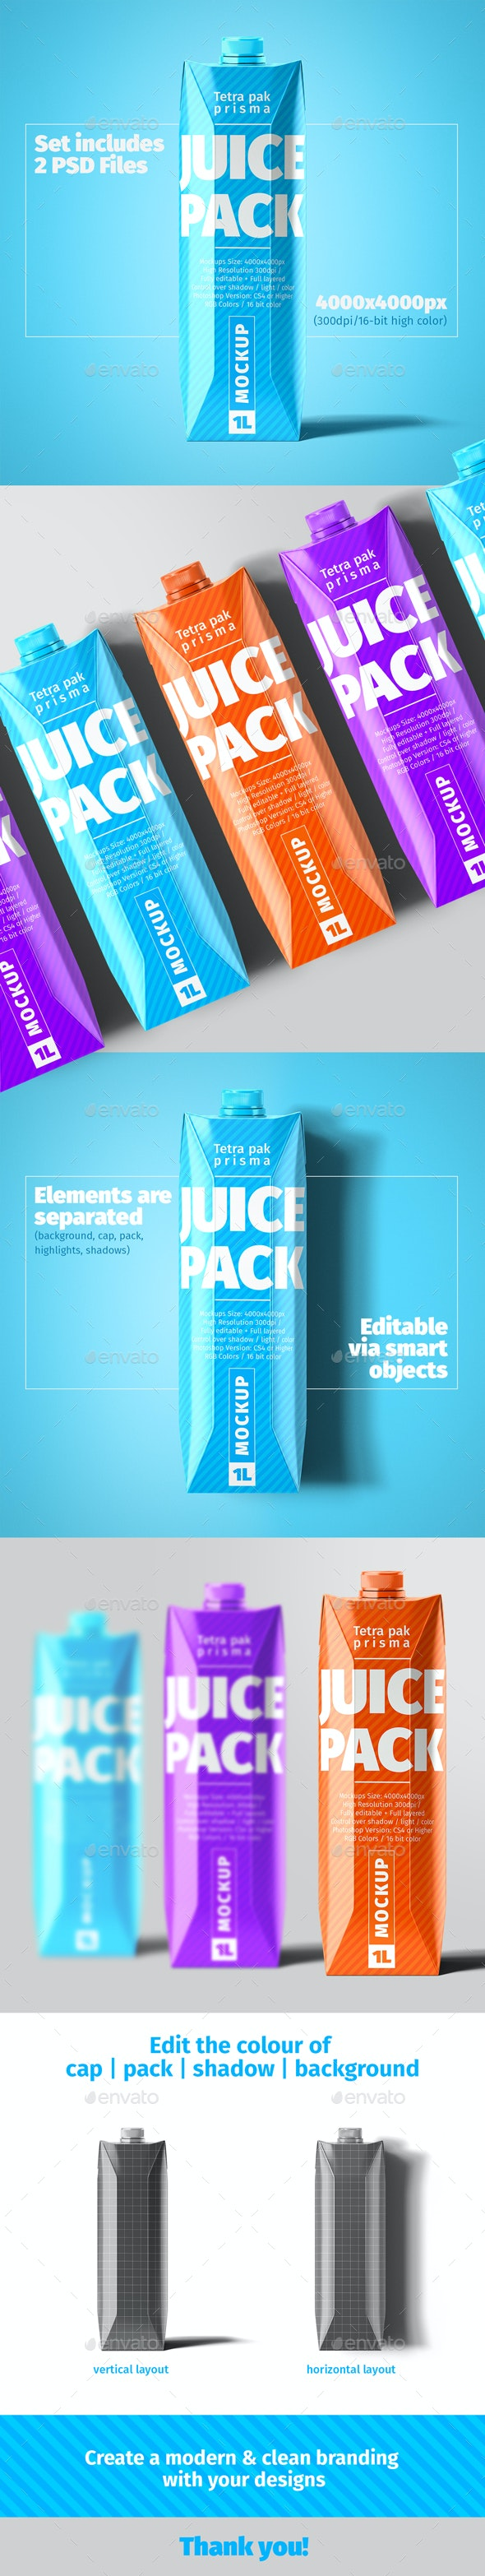 Tetra Pak. Prisma Pack (1L) Mockup - Food and Drink Packaging